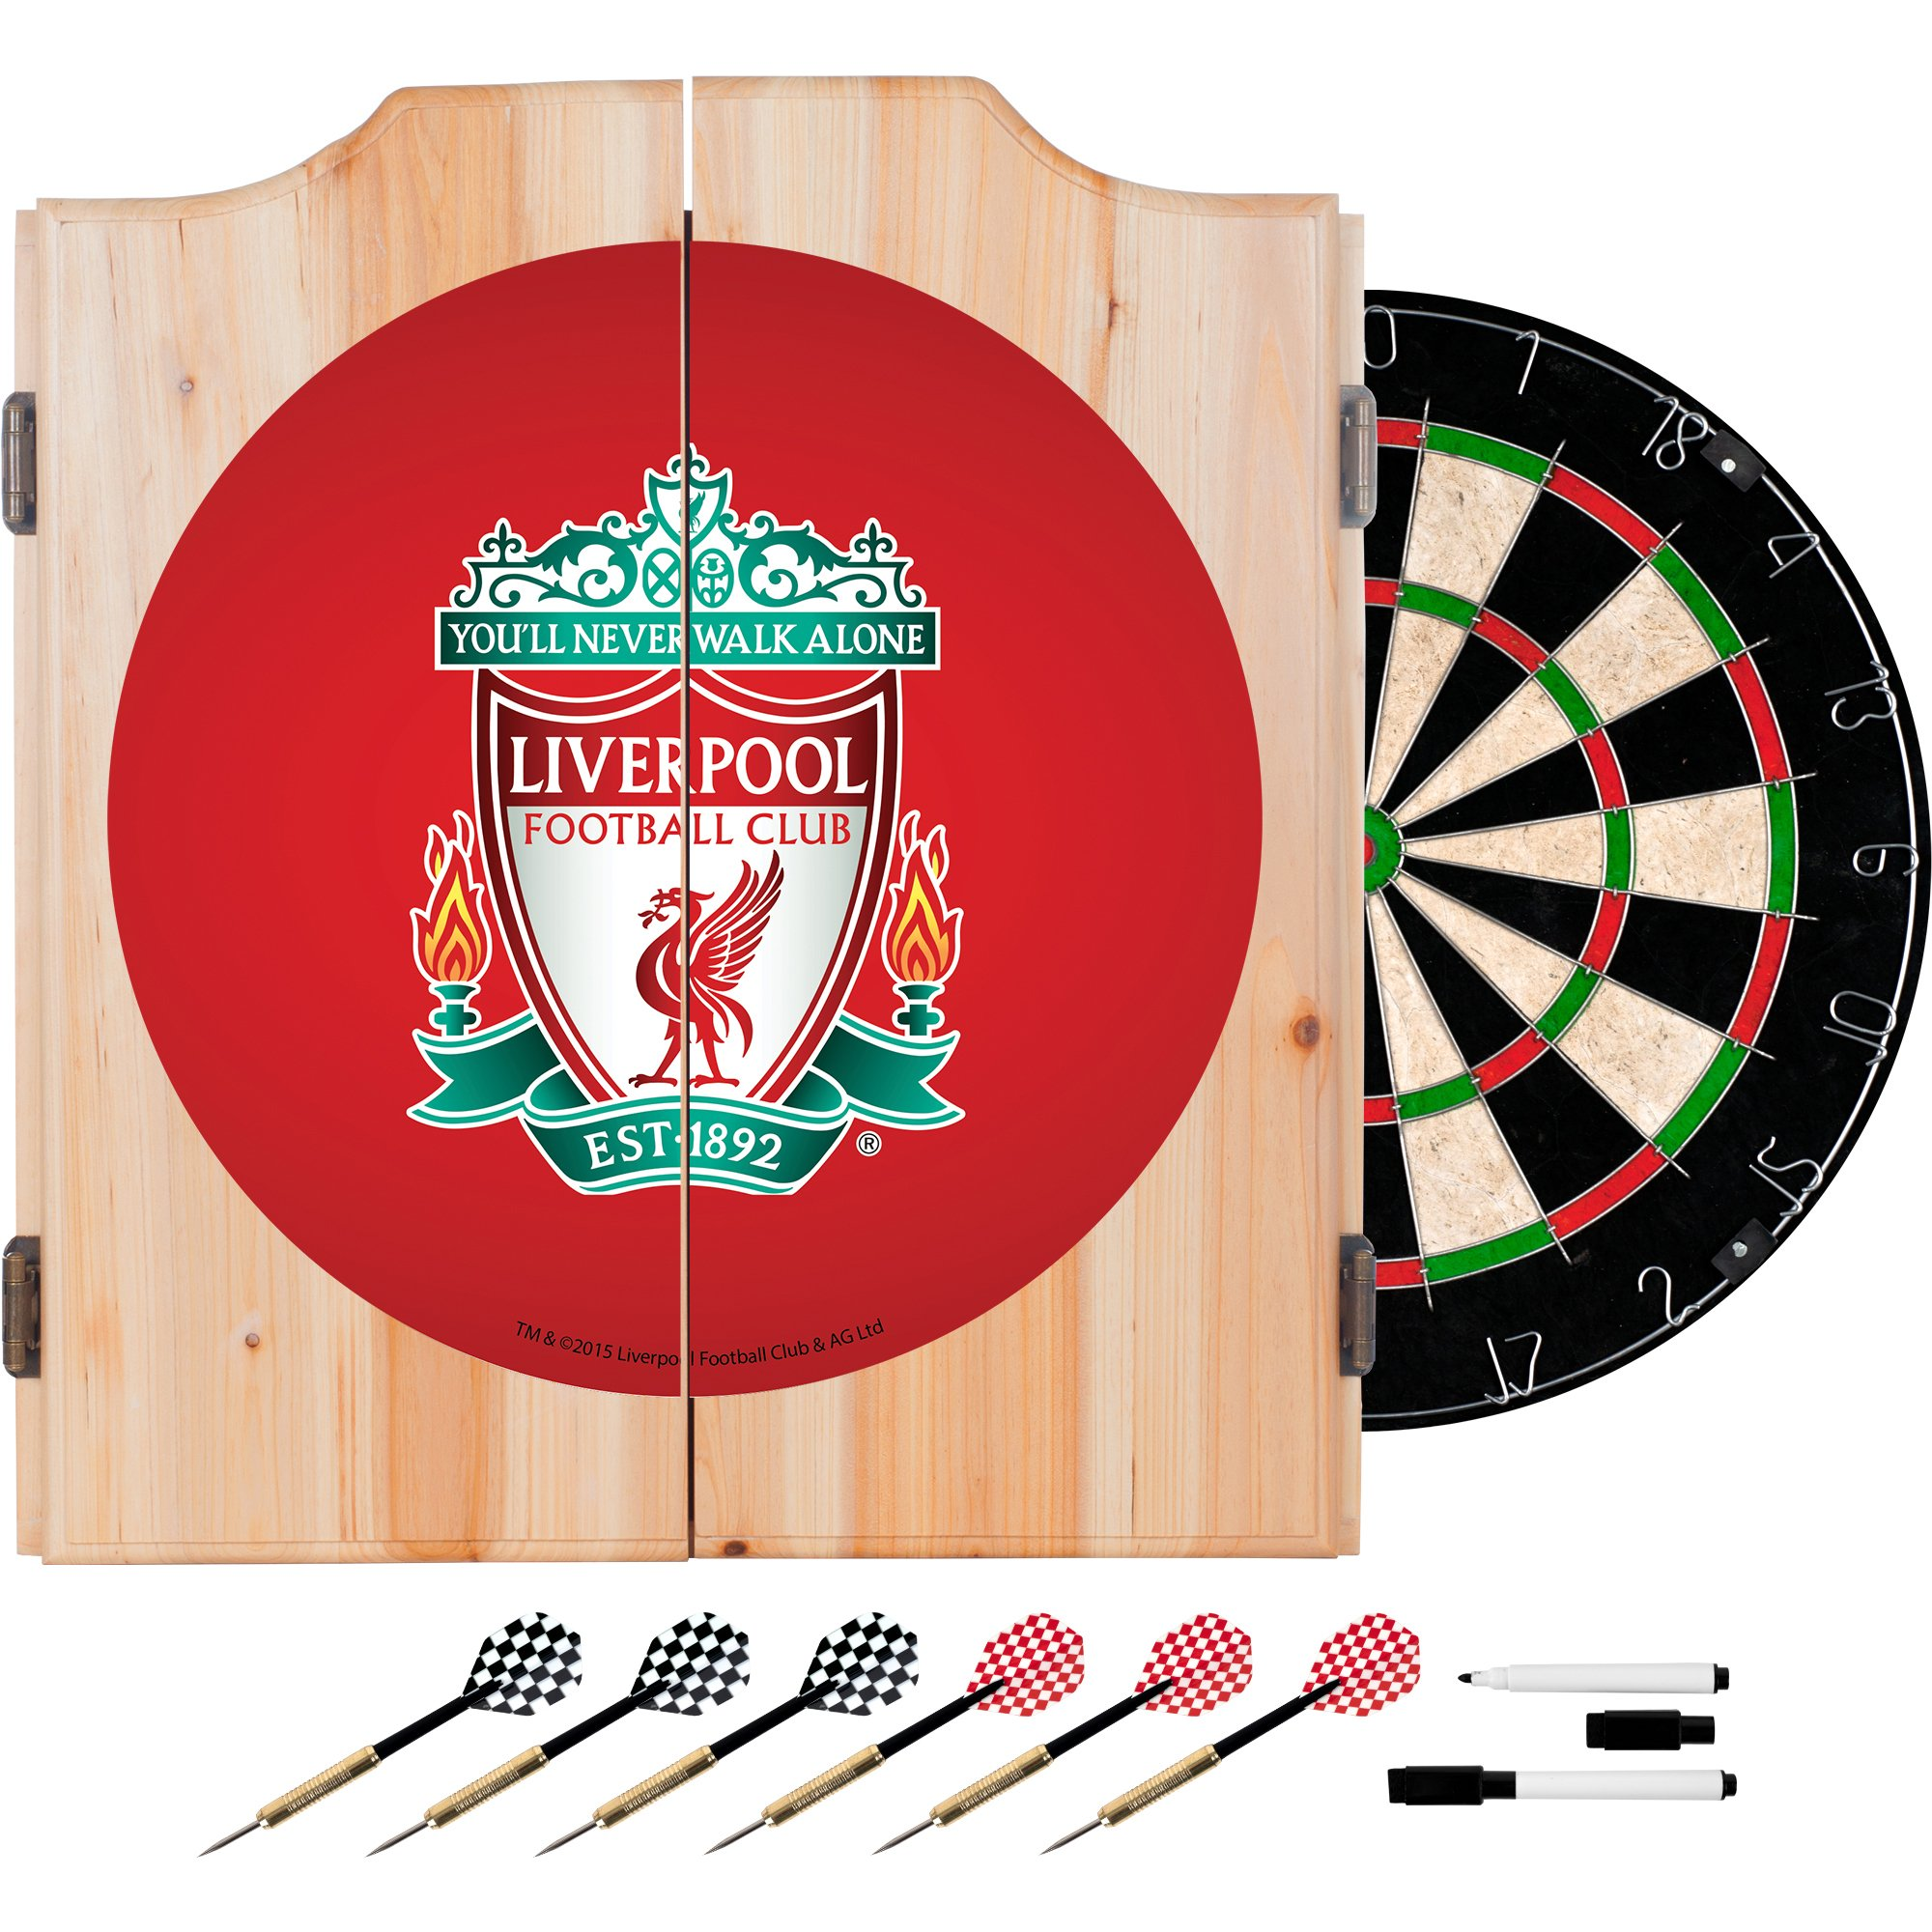 Premier League Liverpool Football Club Dart Cabinet Set with Board